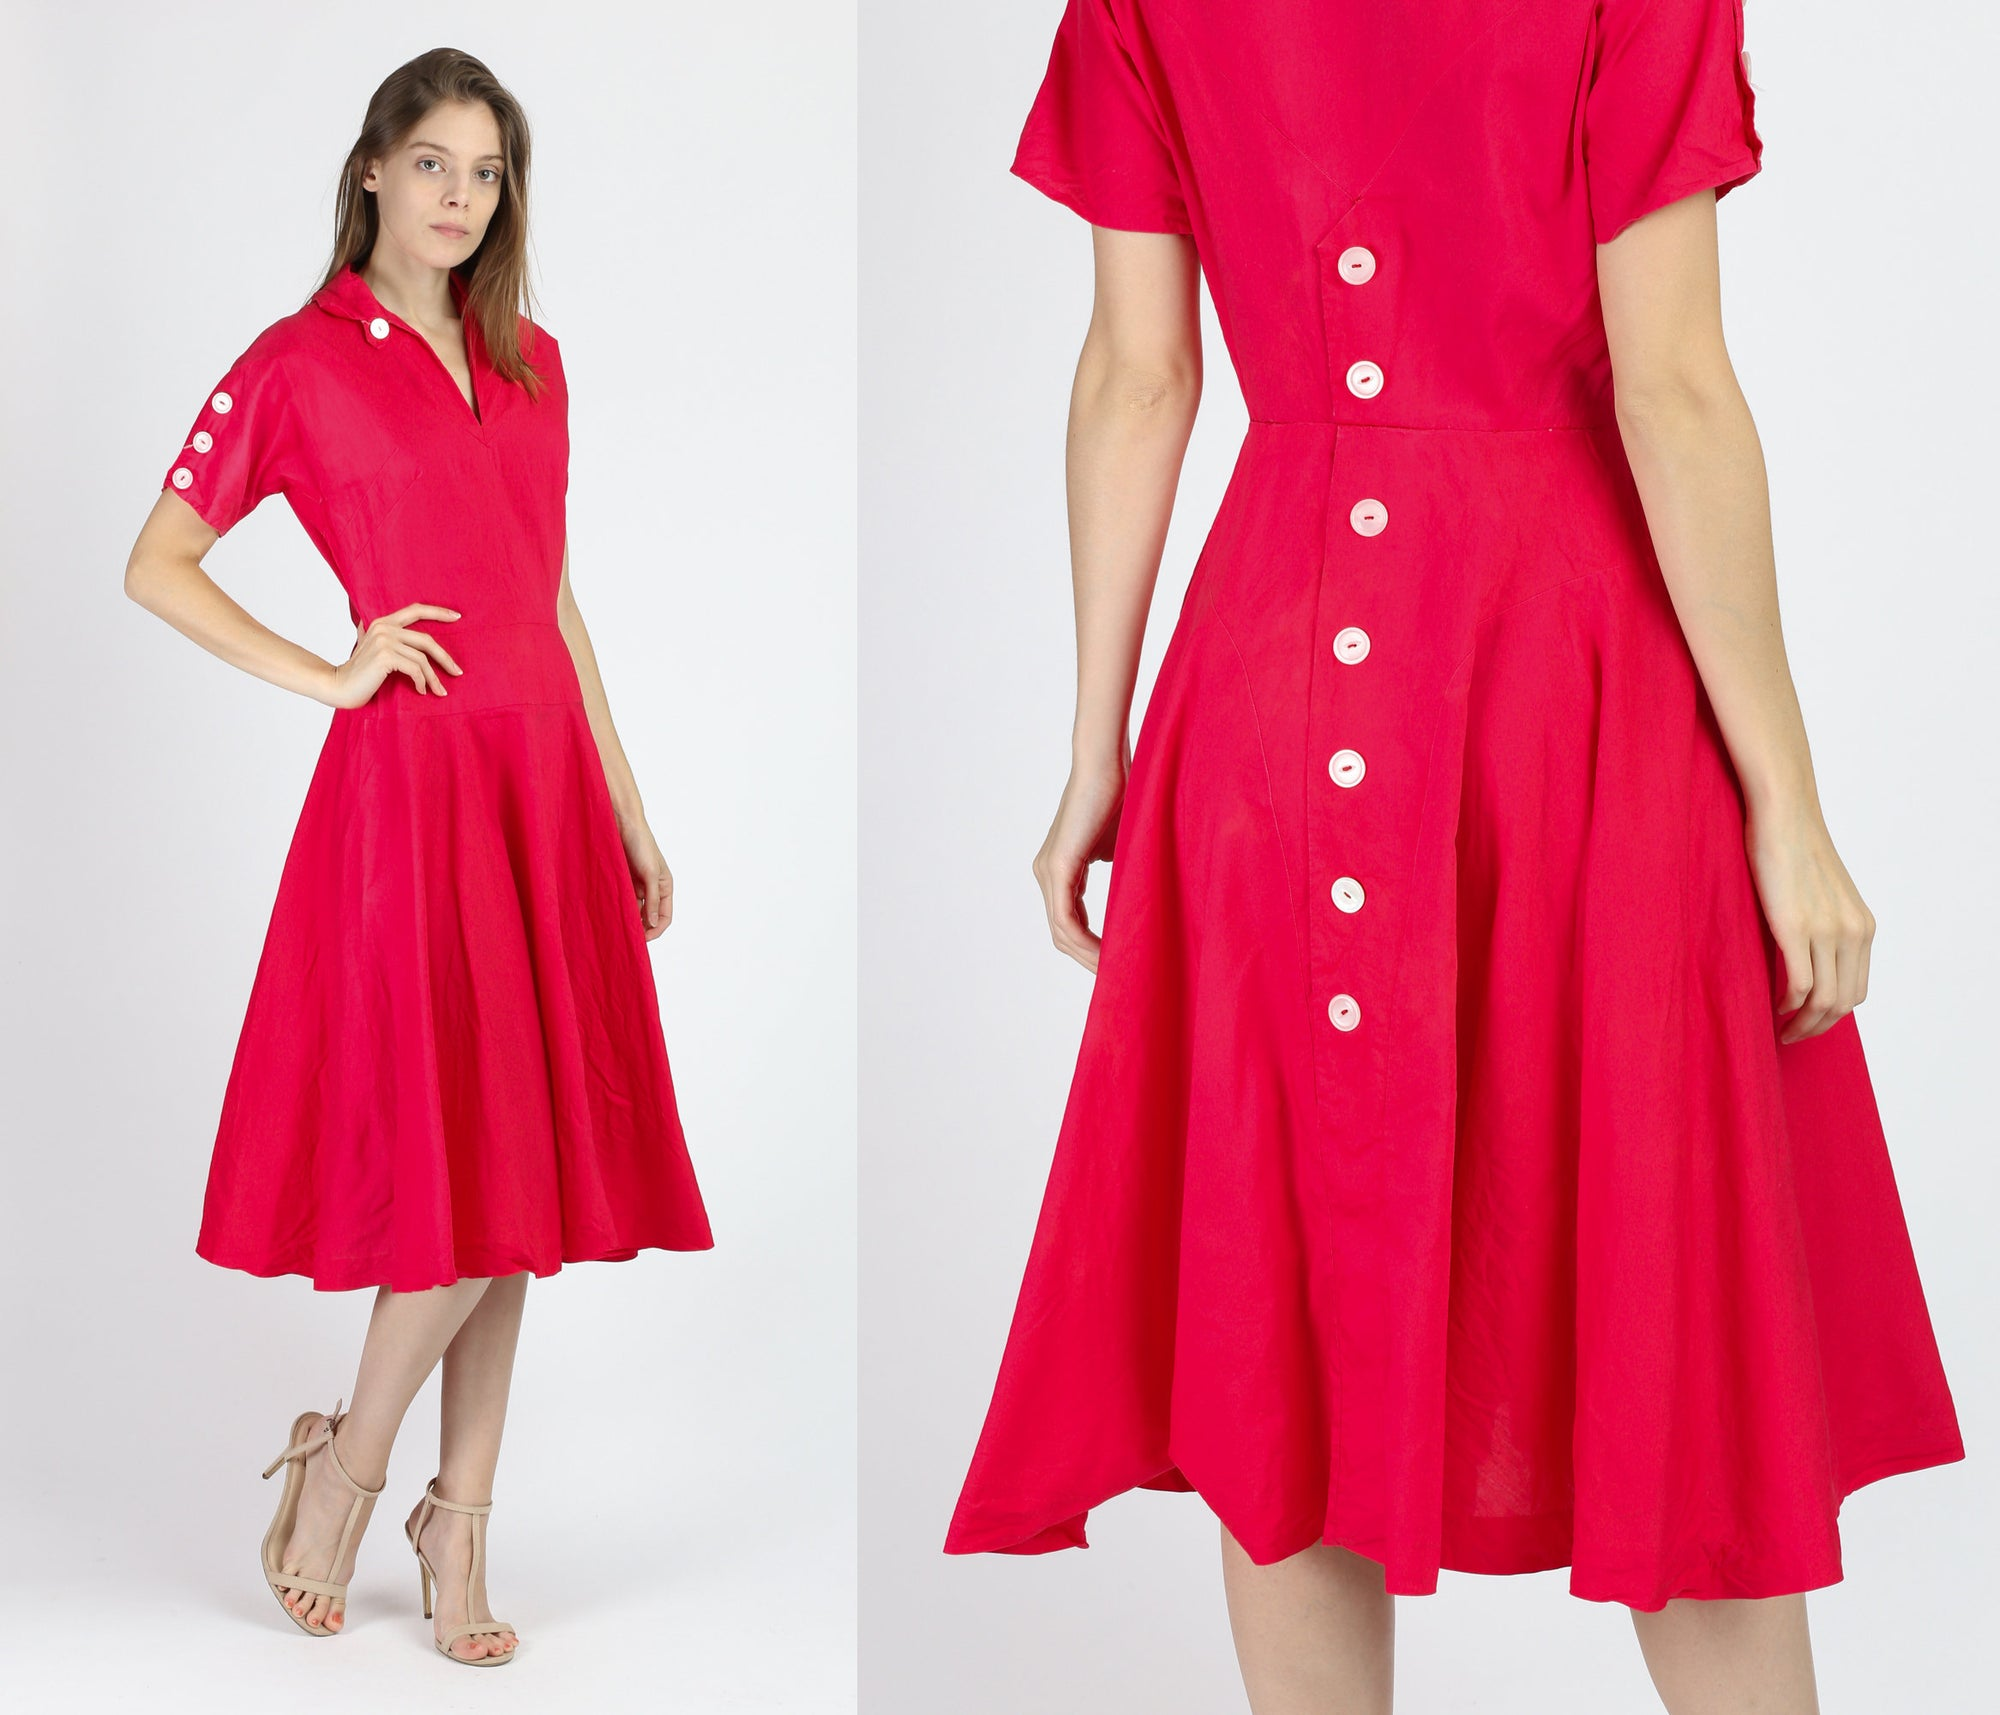 1940s Raspberry Pink Big Button Tea Length Dress - Small